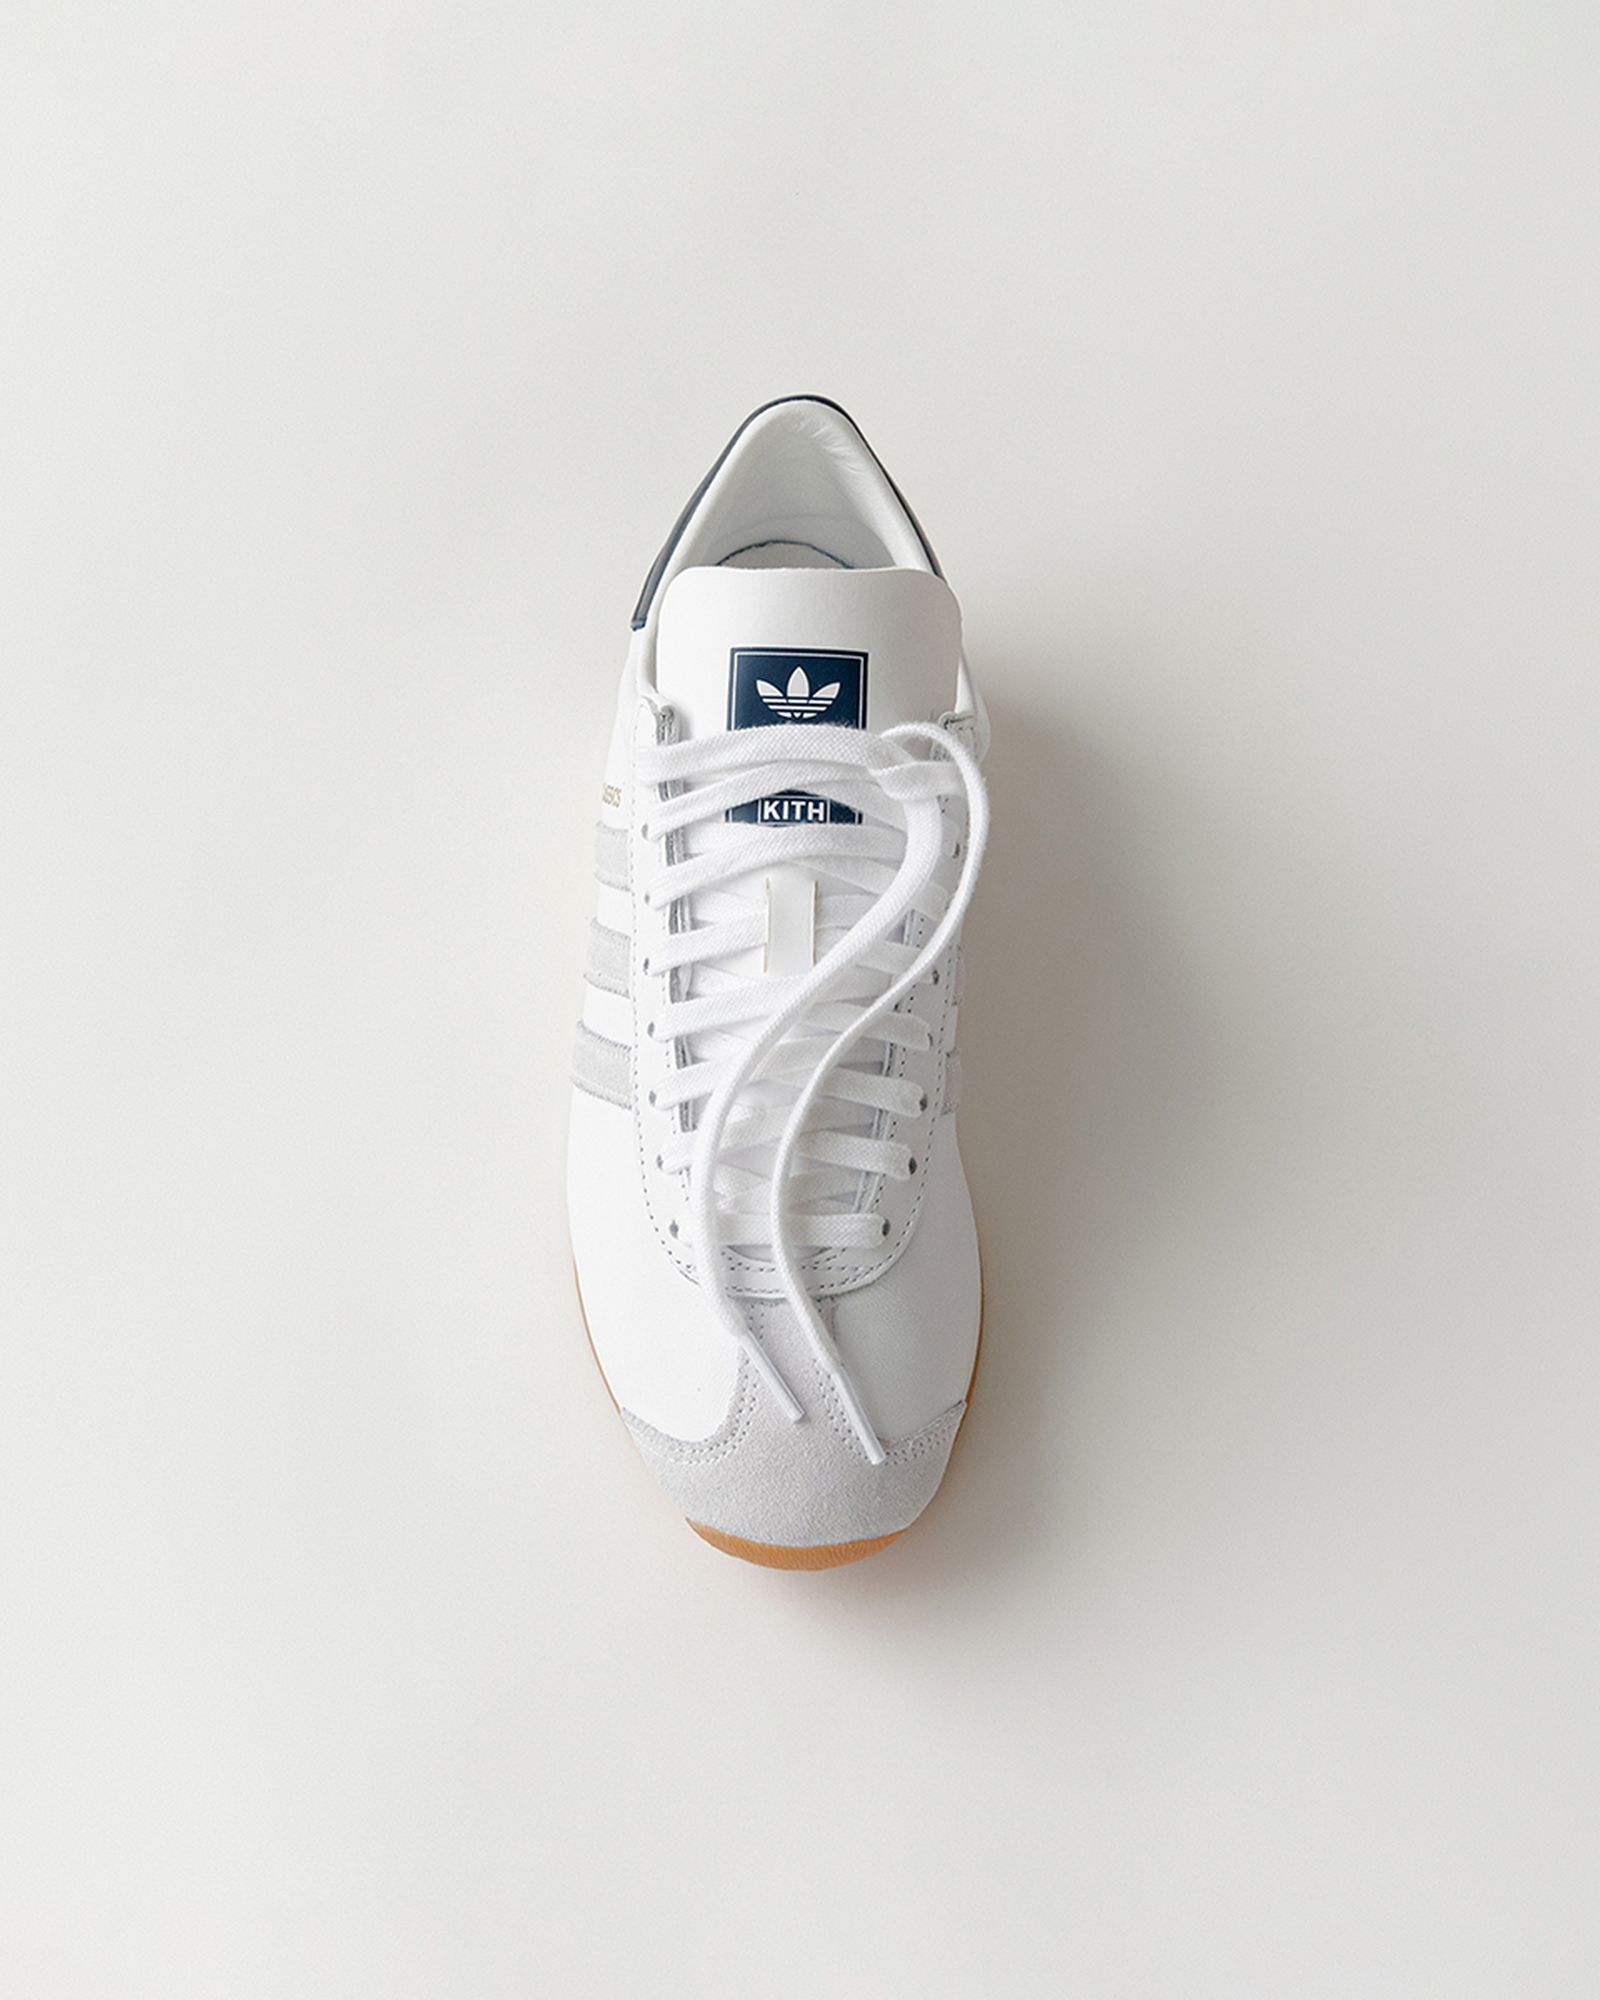 kith-adidas-summer-2021-release-info-36